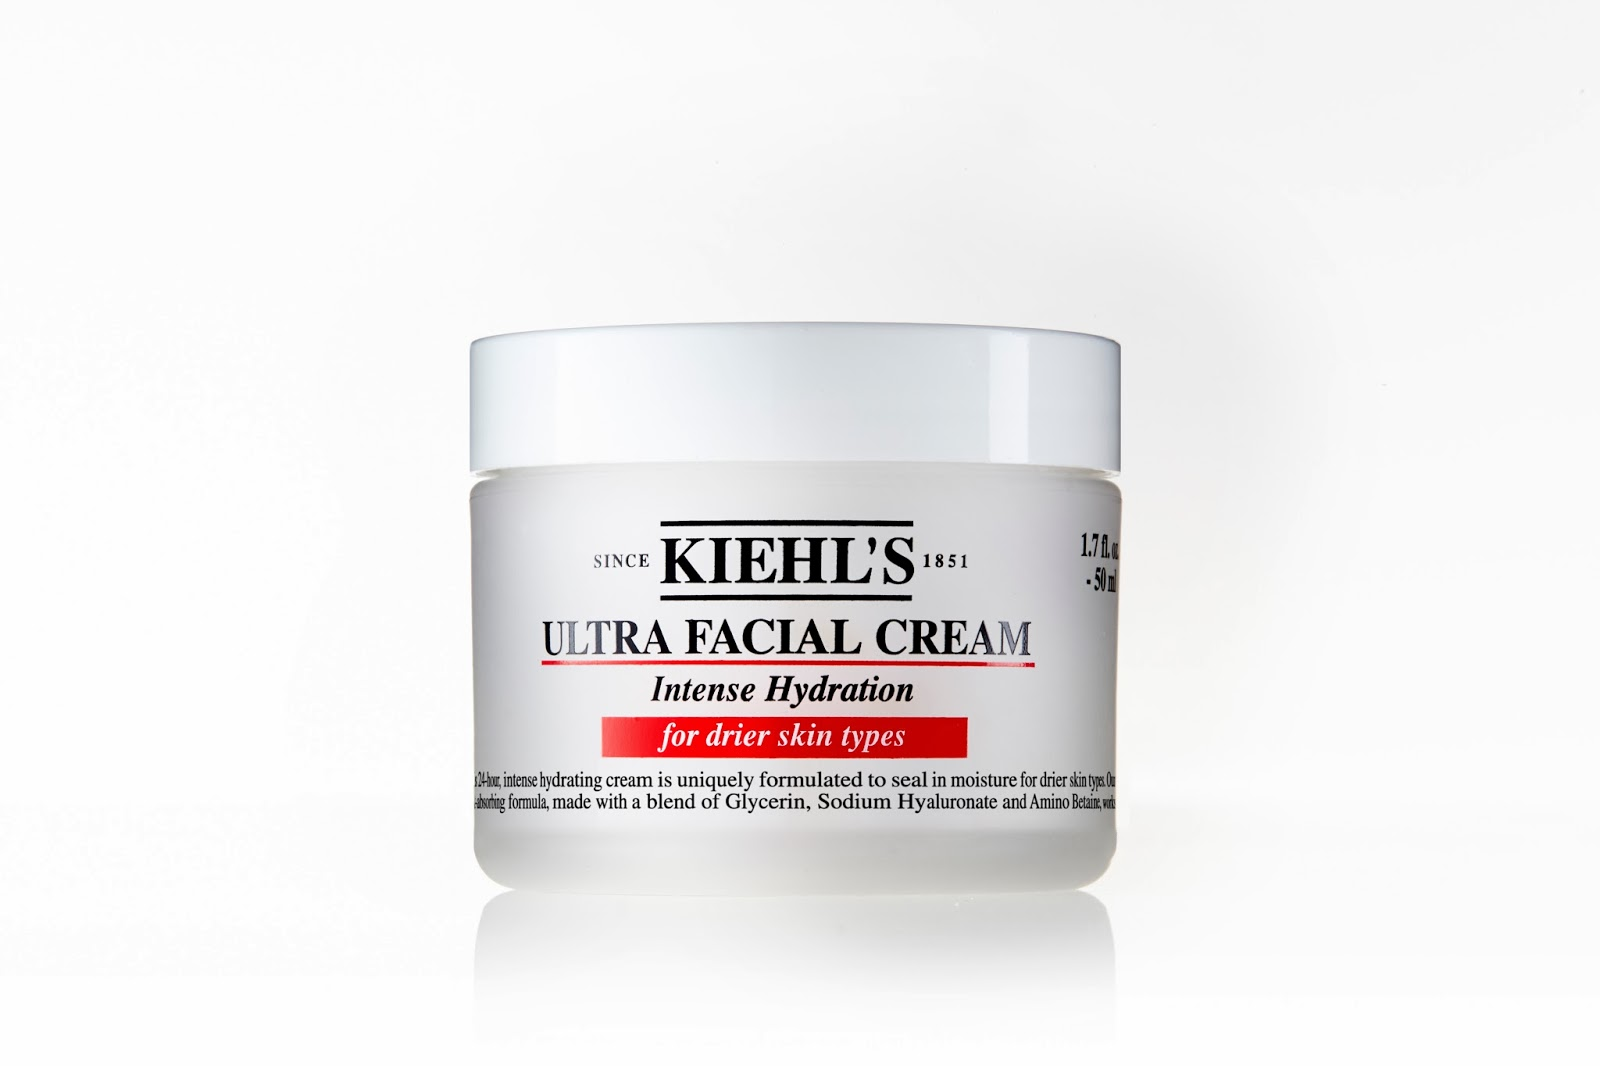 New Product Launch: Kiehl's Ultra Facial Cream Intense Hydration   image